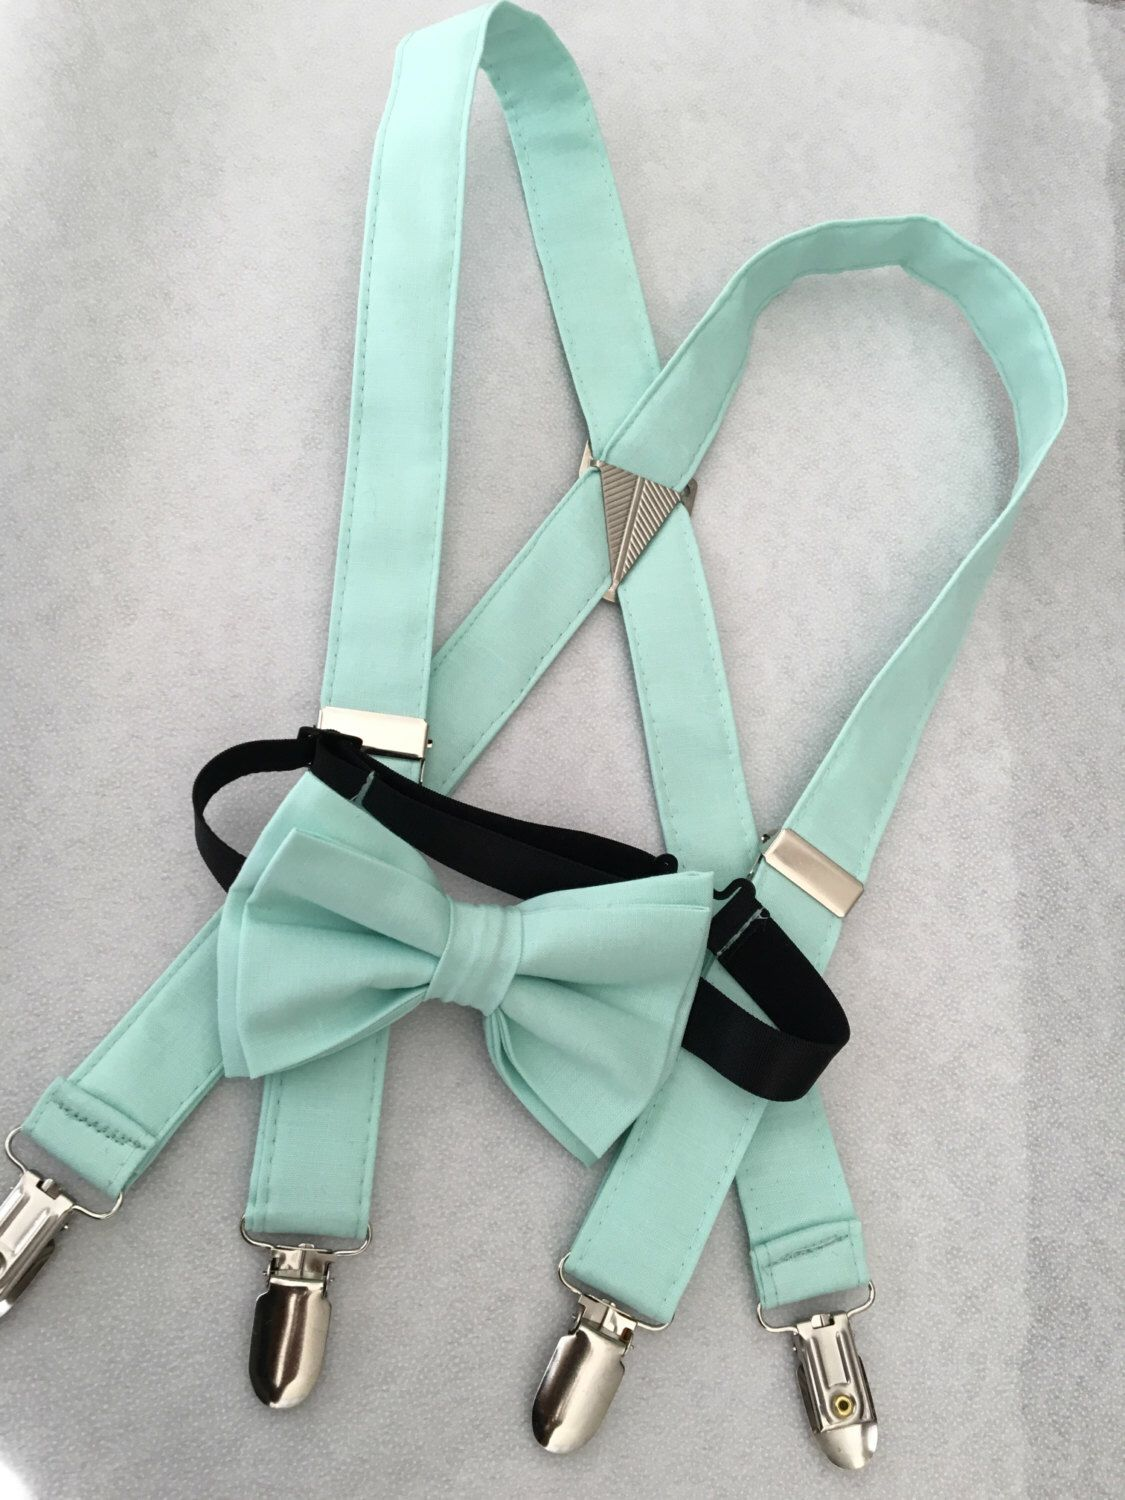 Mint green suspenders and bow tie set for baby's,toddlers,kids,teens,